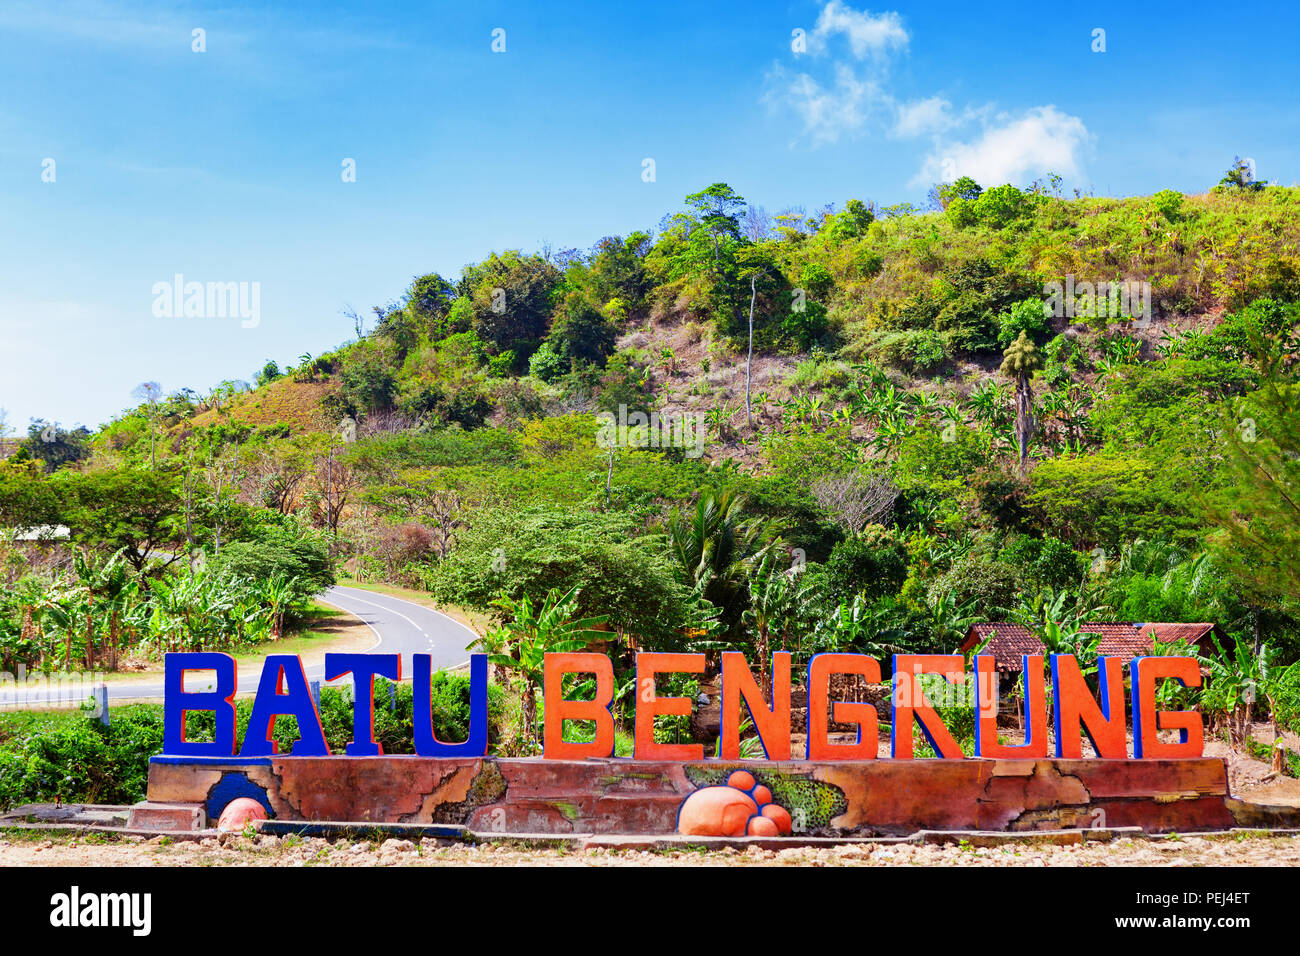 East Java, Indonesia - July 10, 2018: Pantai Batu Bengkung sea beach and recreational park entrance sign board. Popular place to visit for family holi - Stock Image